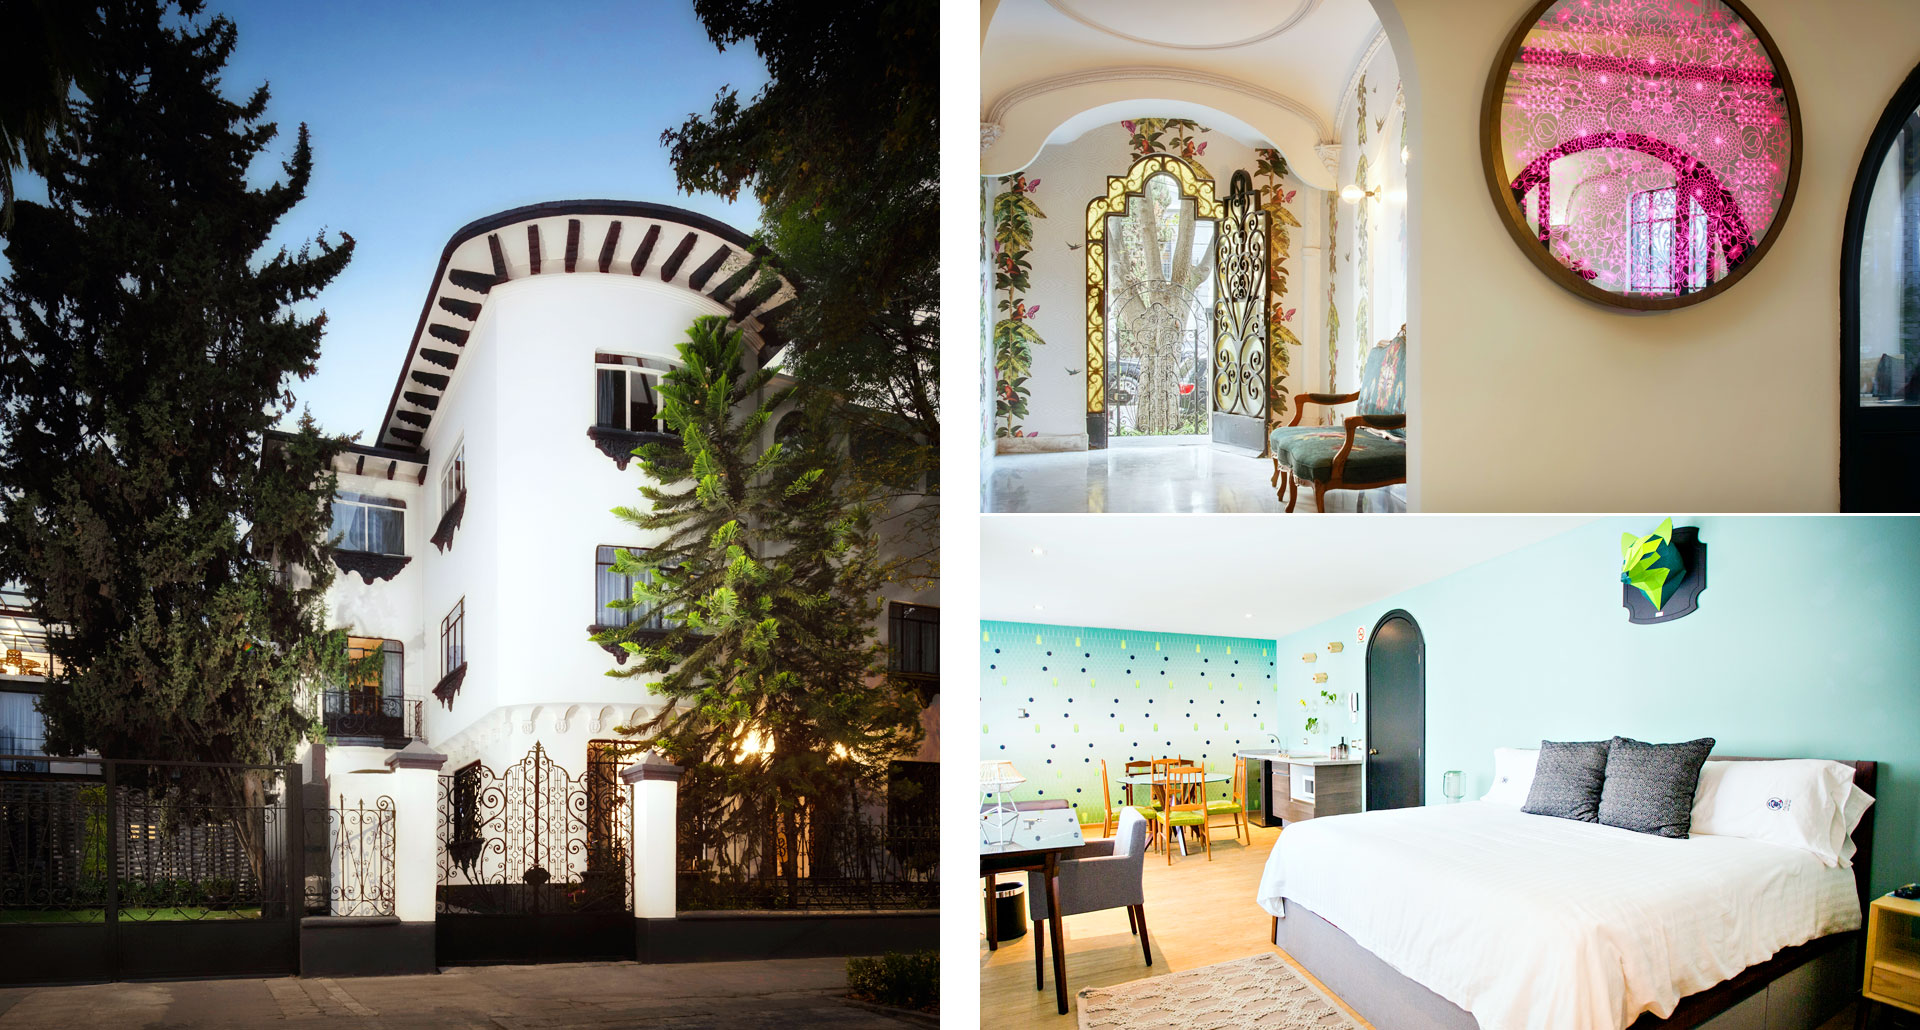 Pug Seal Boutique B&B Polanco - luxury boutique hotel in Mexico City